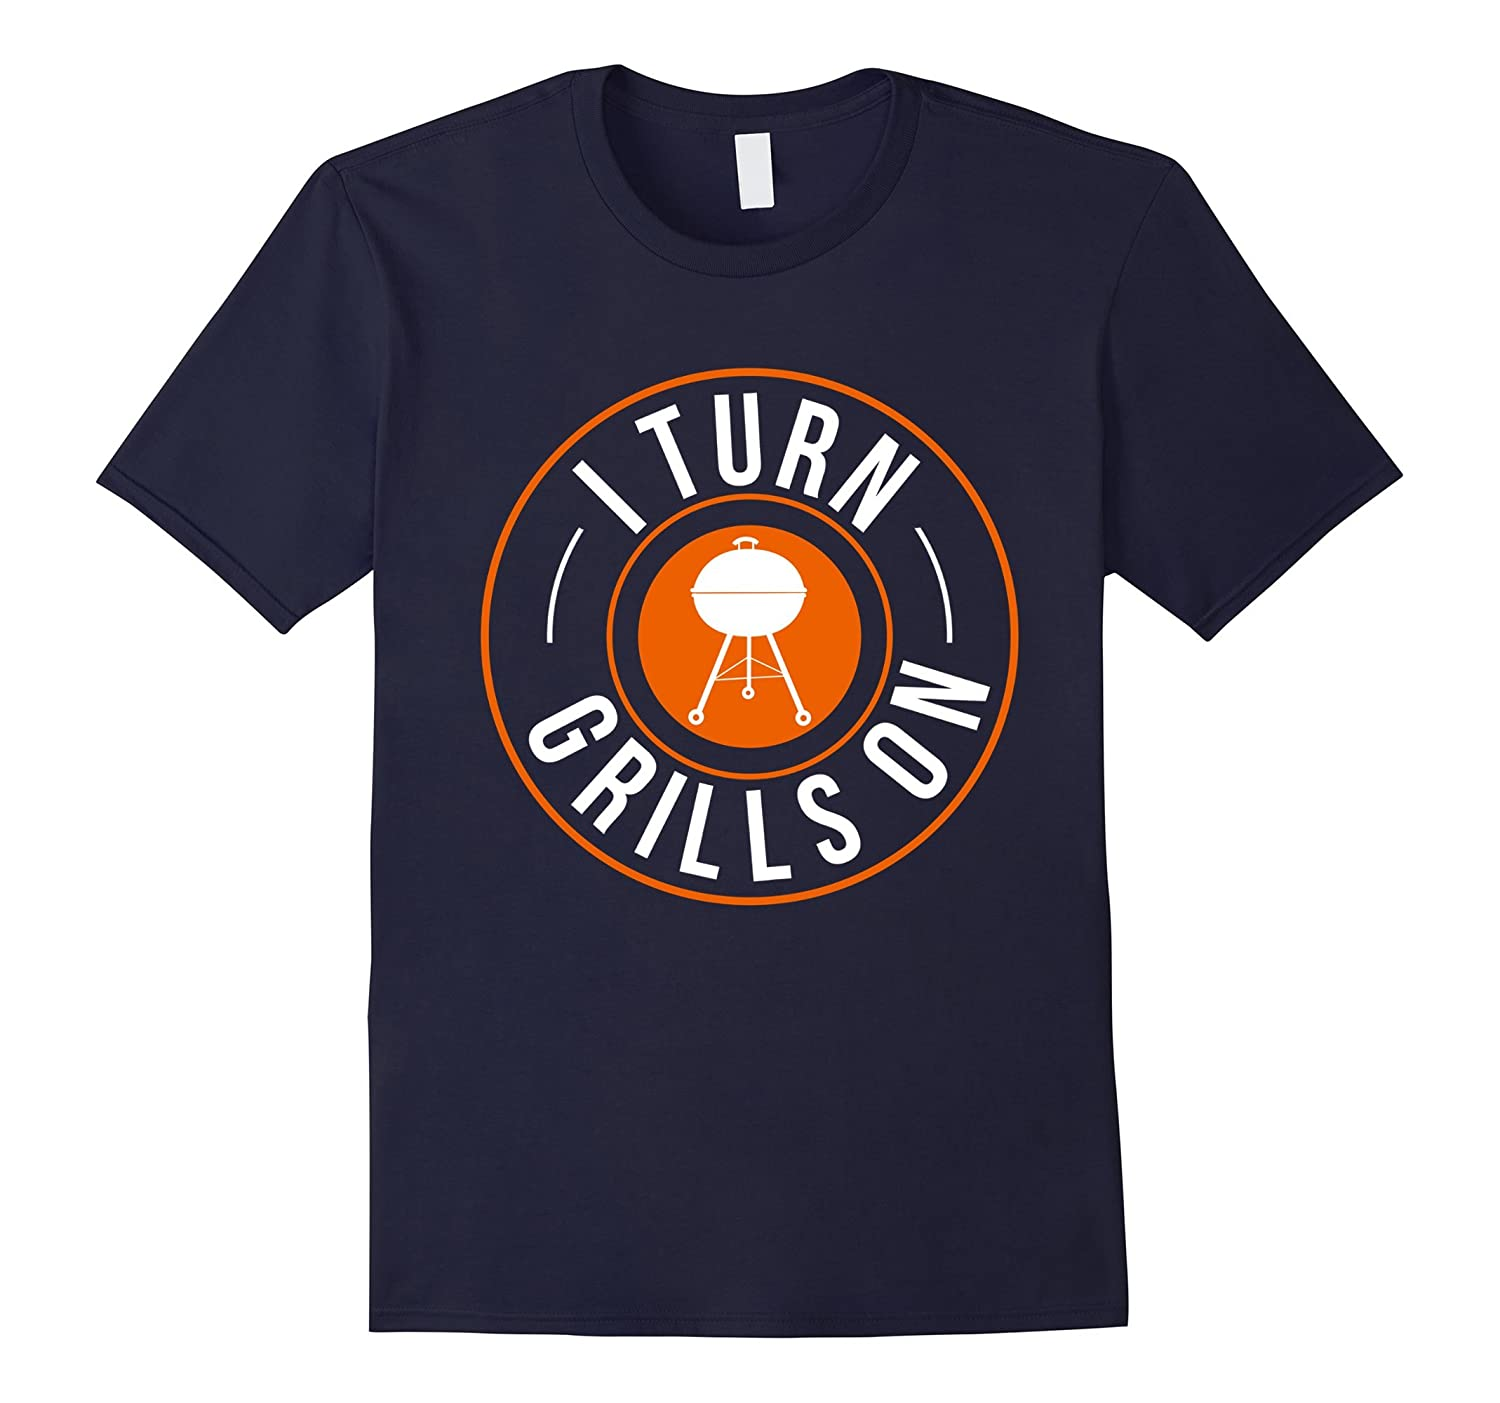 I Turn Grills On T-Shirt Funny Grill Tee's BBQ Cookout